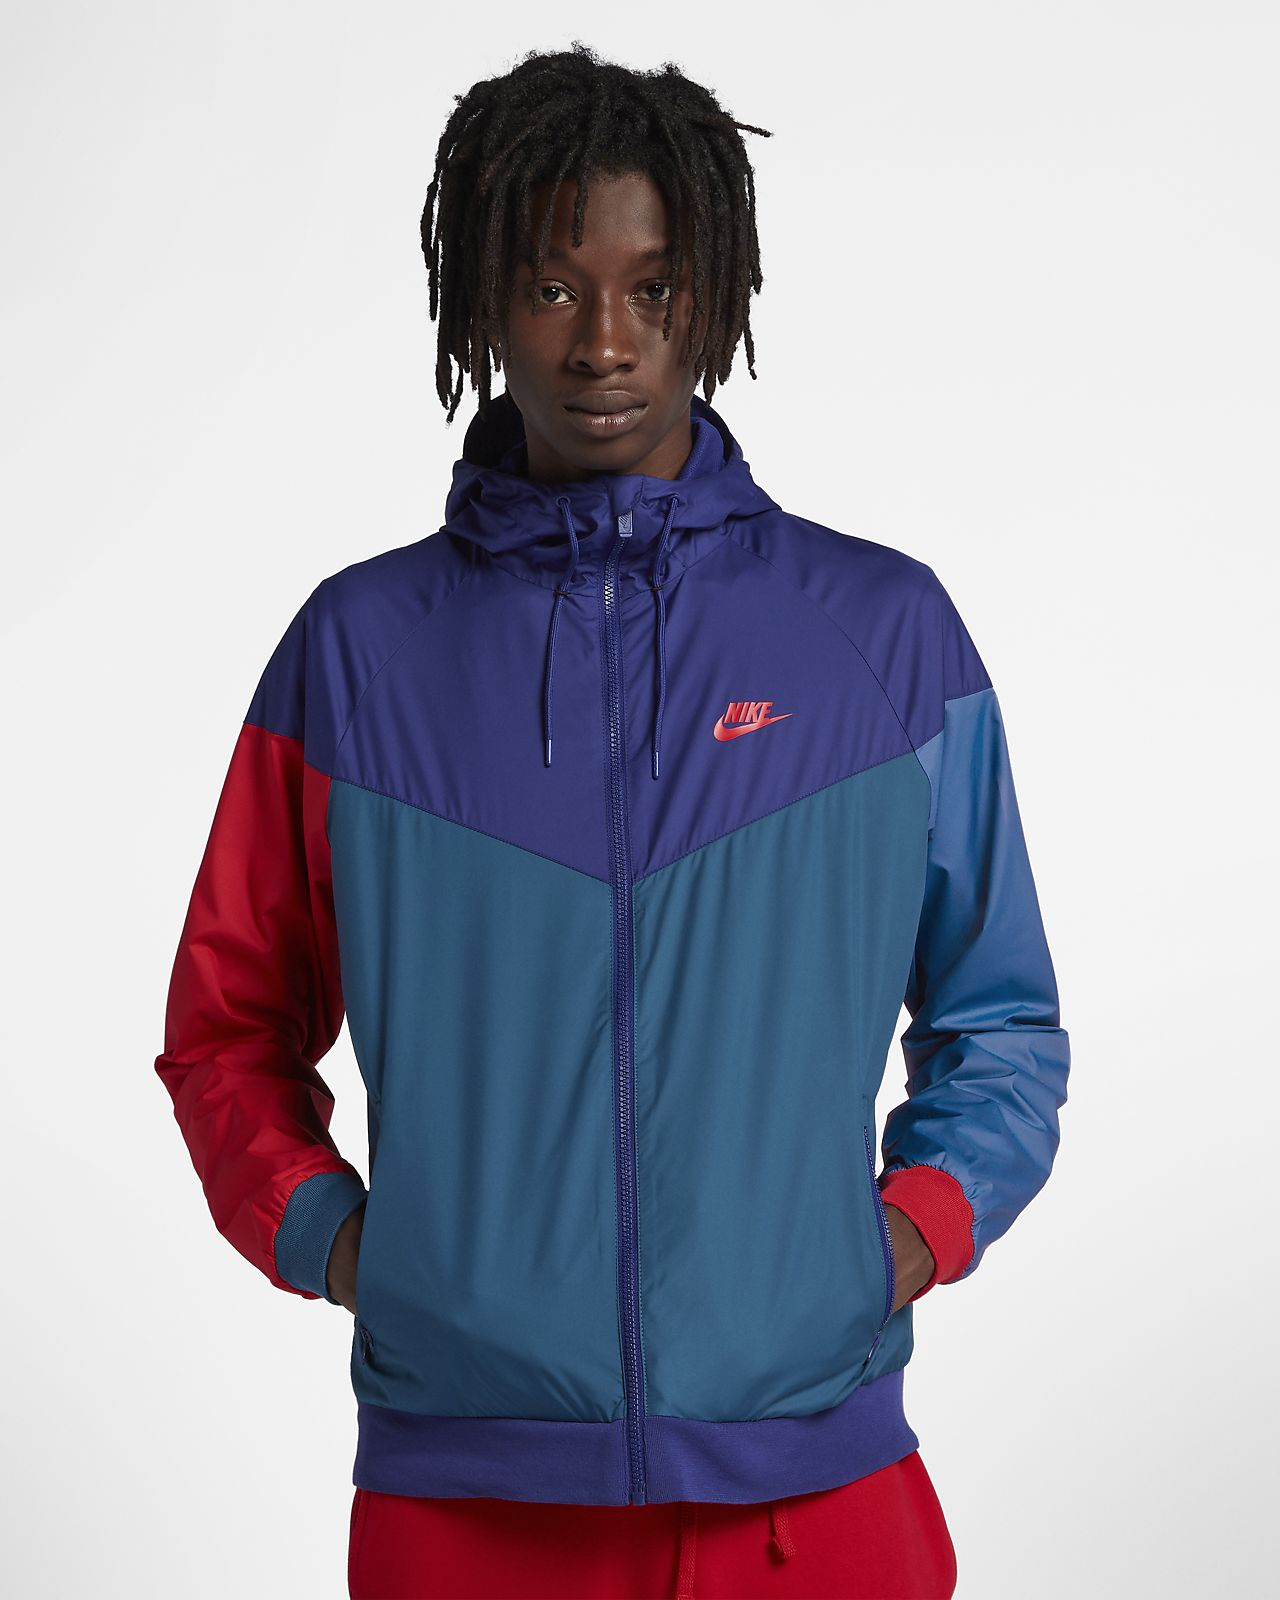 4b5bd7d442 Low Resolution Nike Sportswear Windrunner Men s Jacket Nike Sportswear  Windrunner Men s Jacket